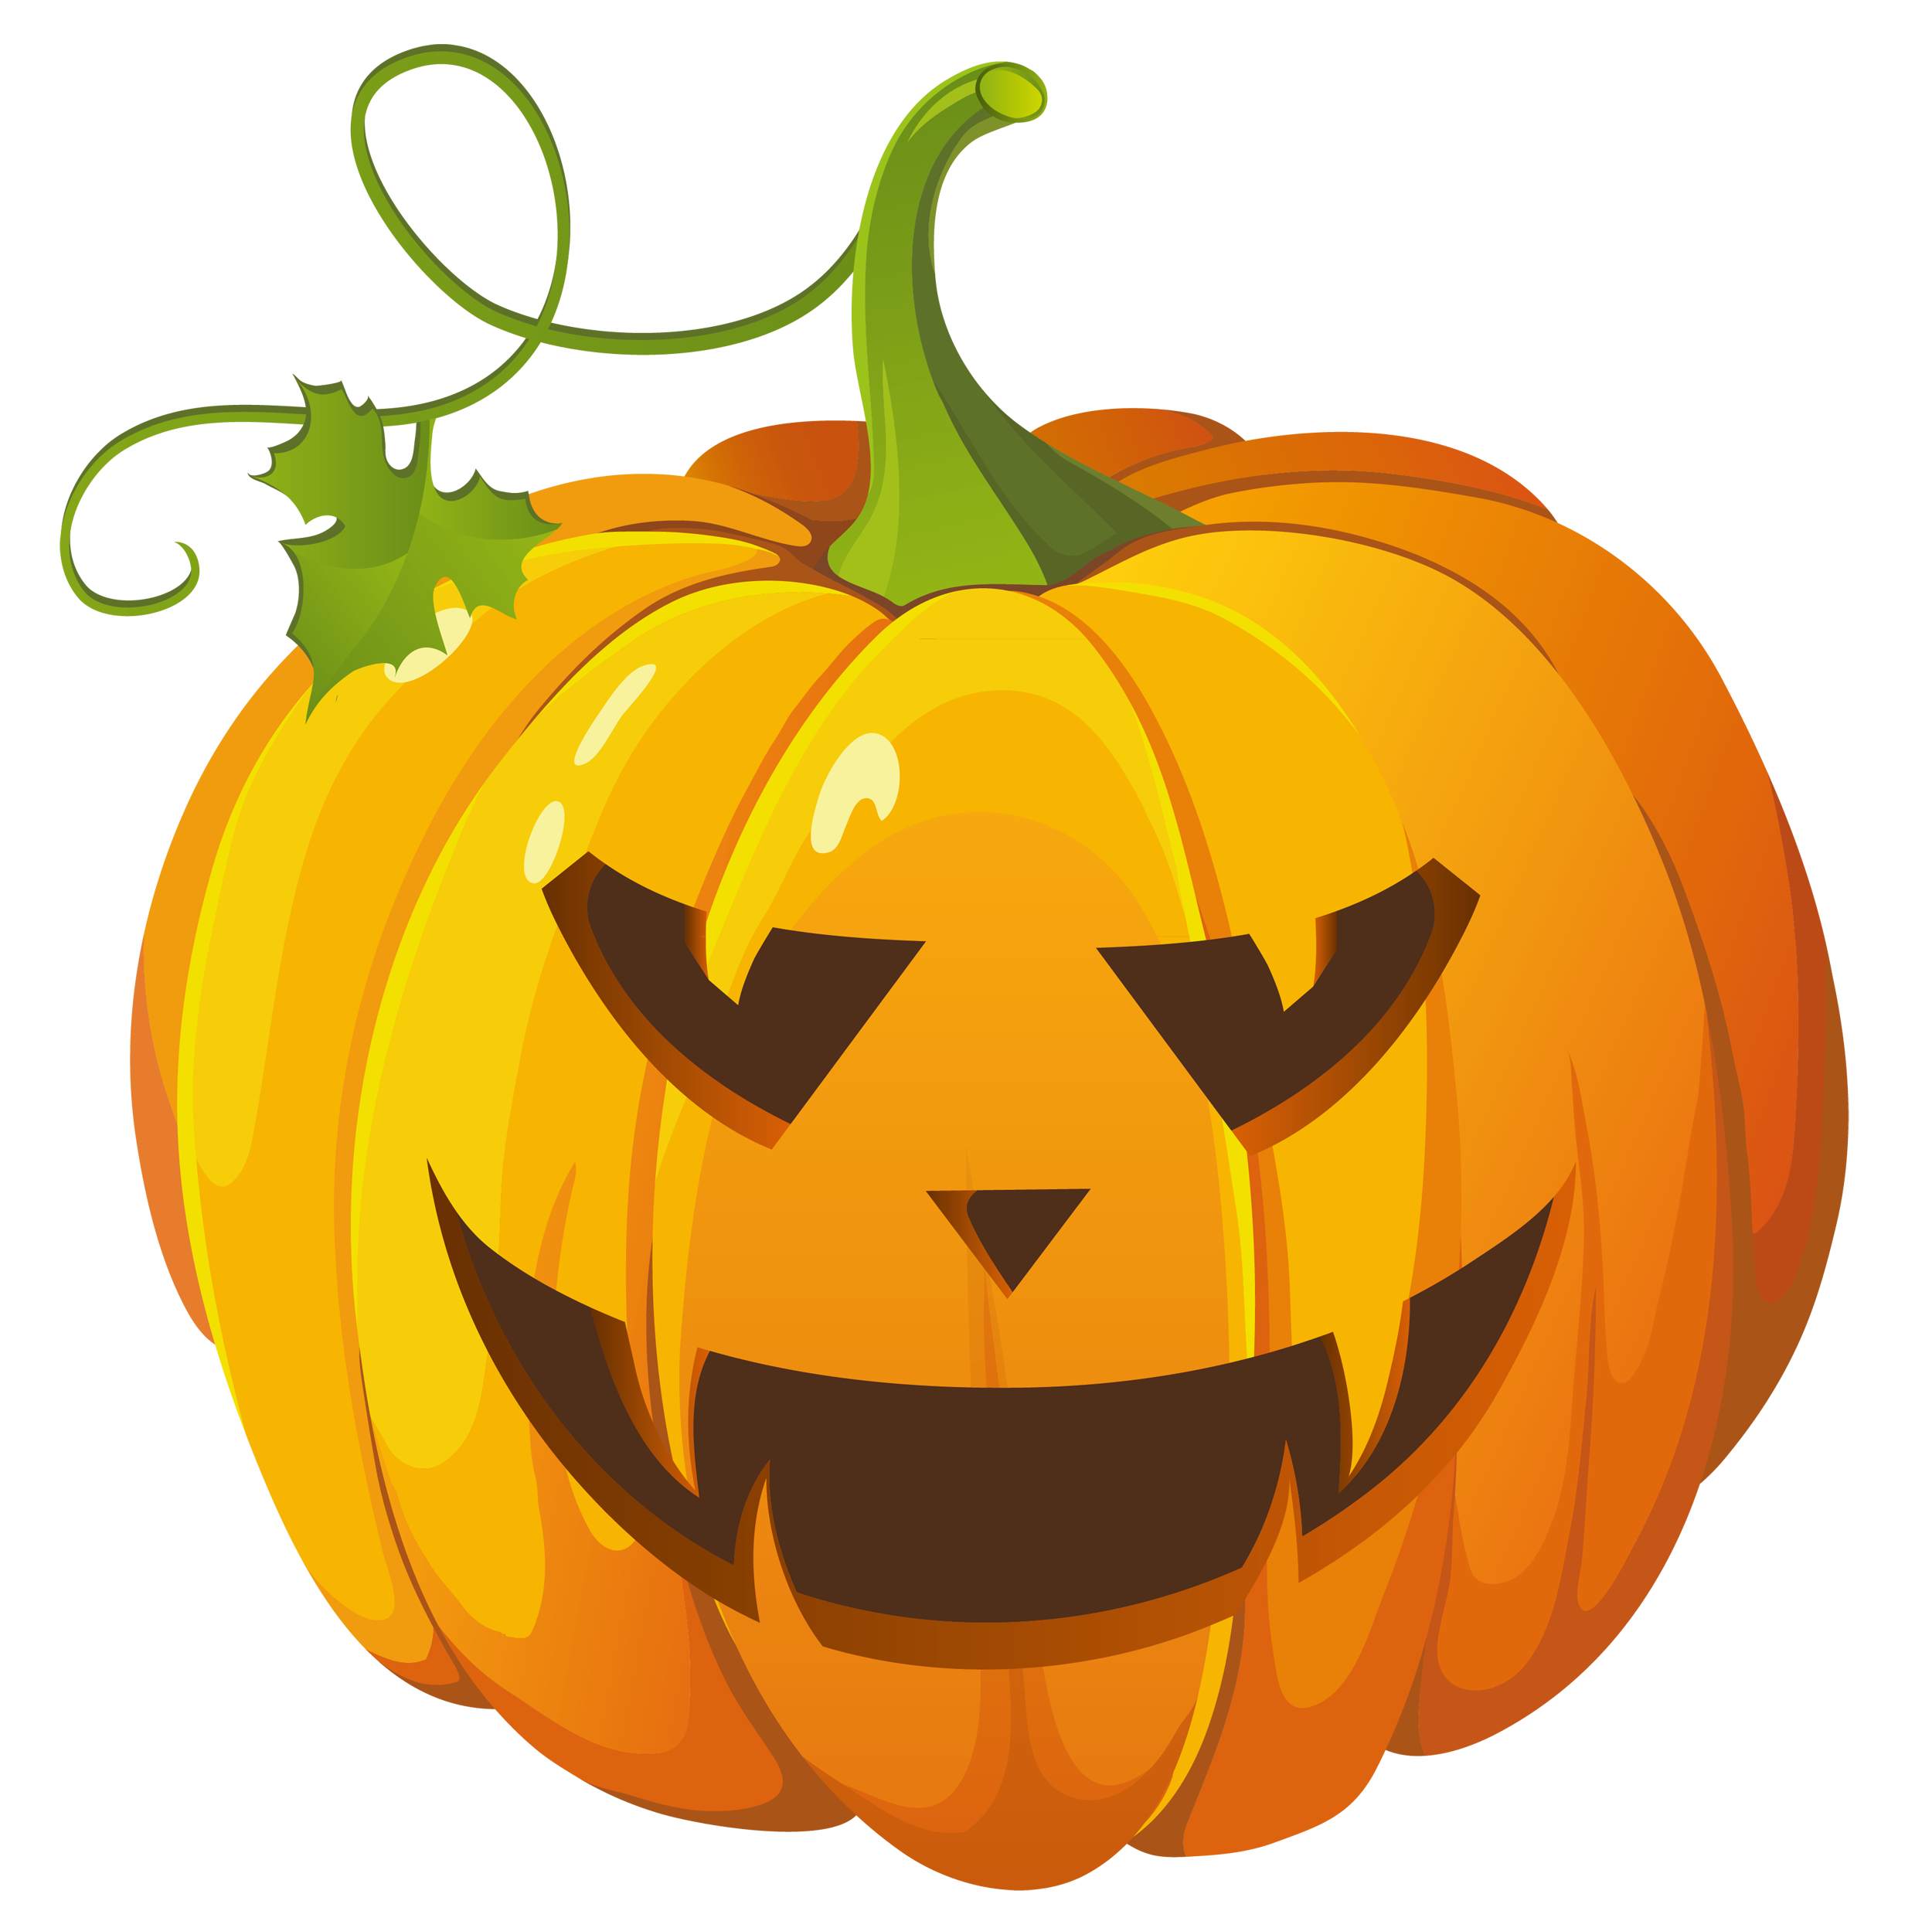 Free at getdrawings com. Cute pumpkin carving clipart